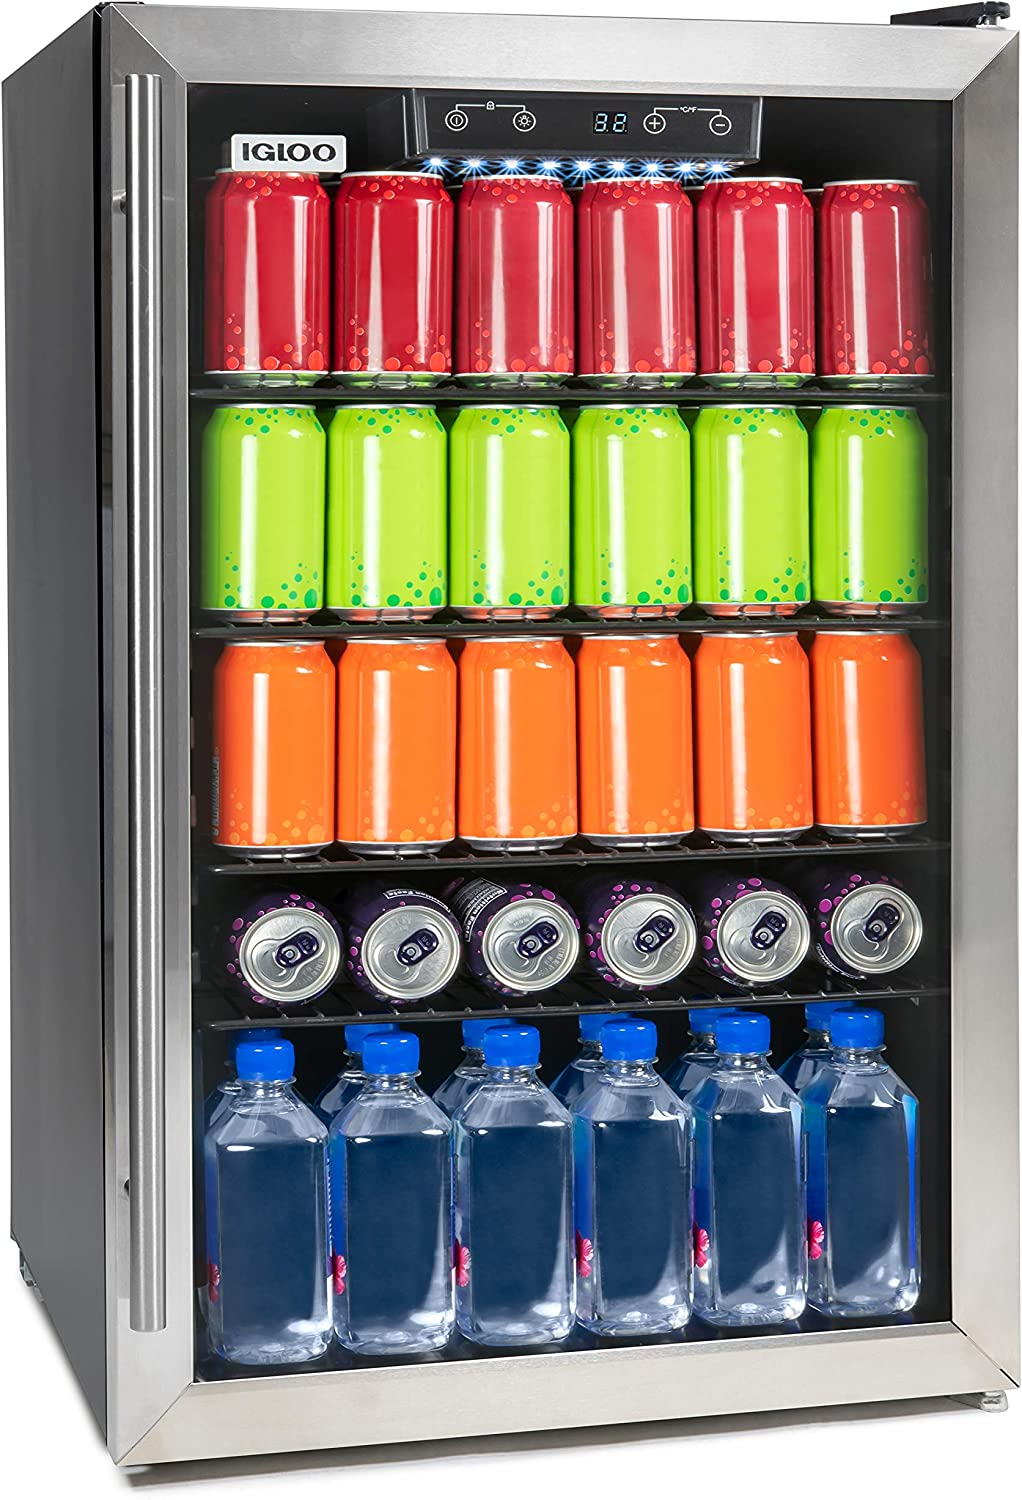 Igloo IBC41FNSS New And Improved 180-Can Capacity Stainless Steel LED-Lighted Digitally Controlled Double-Pane Glass Door Beverage Center Refrigerator and Cooler for Soda, Beer, Wine and Water